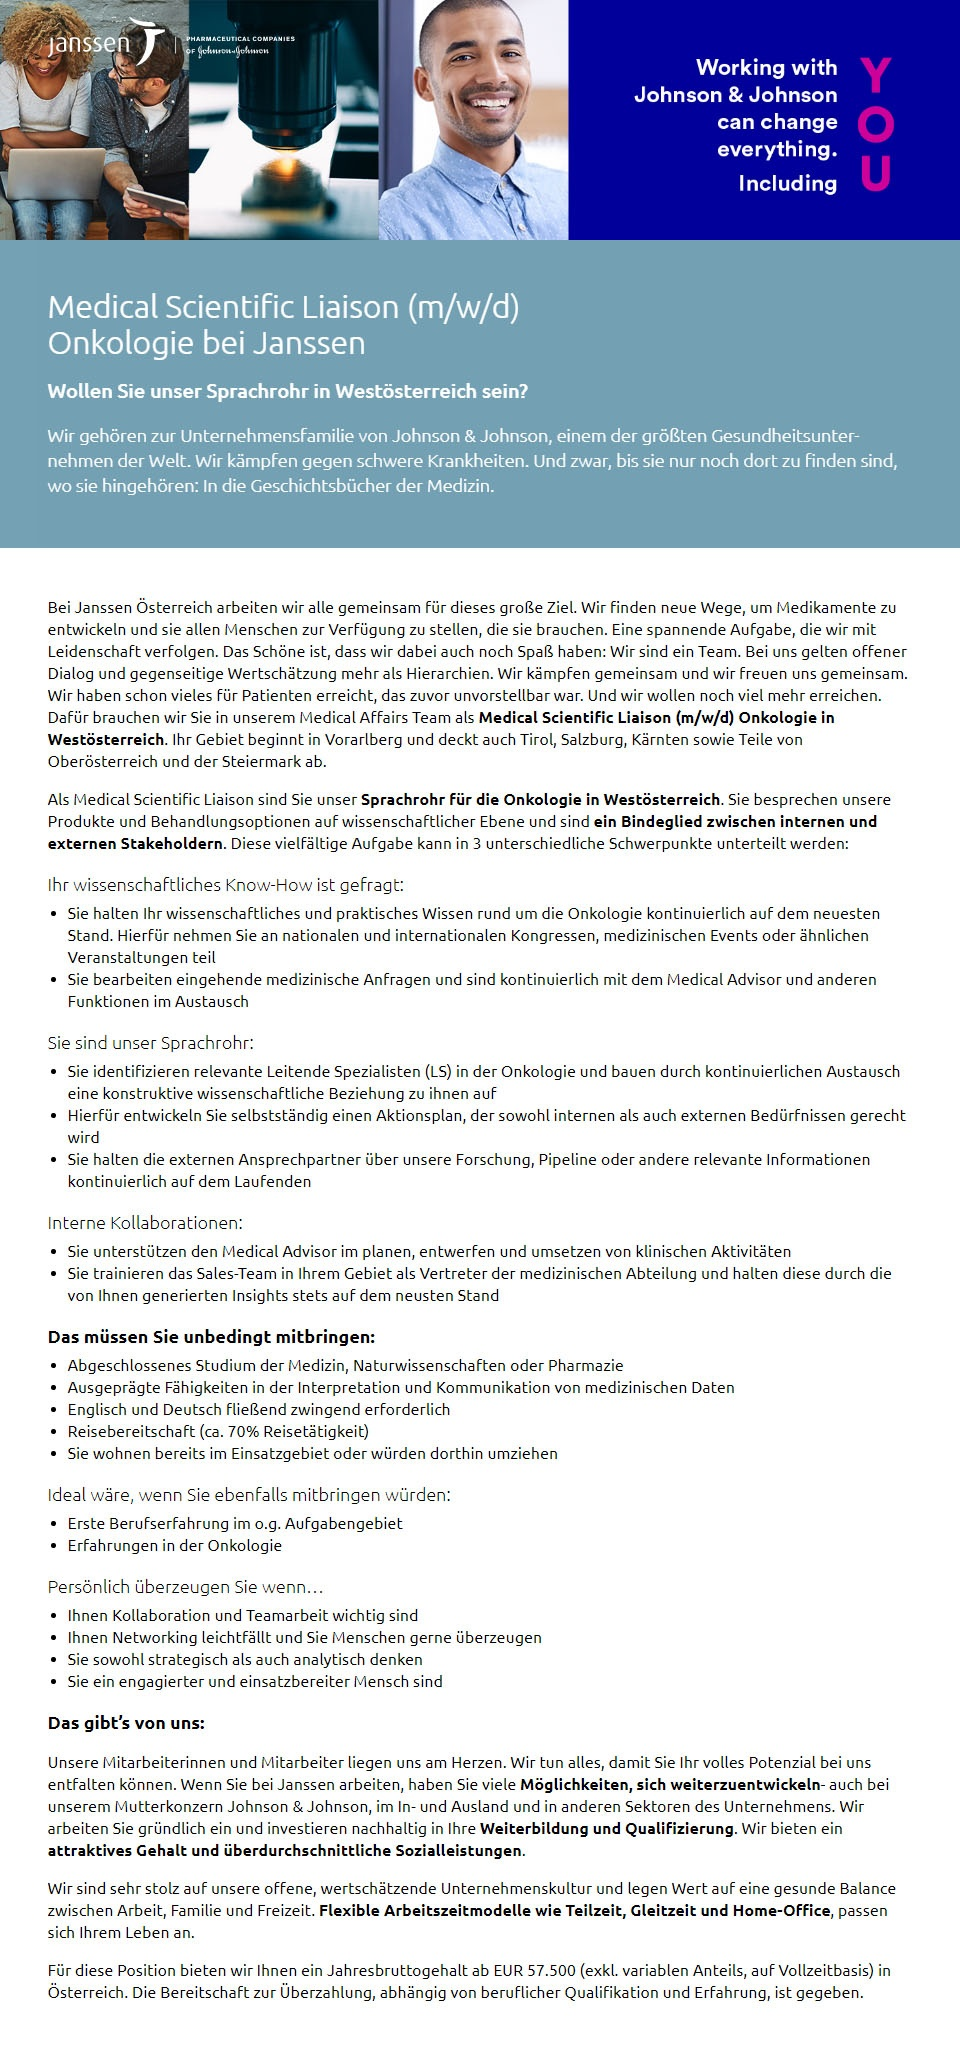 Medical Scientific Liaison (m/w/d)   Onkologie bei Janssen